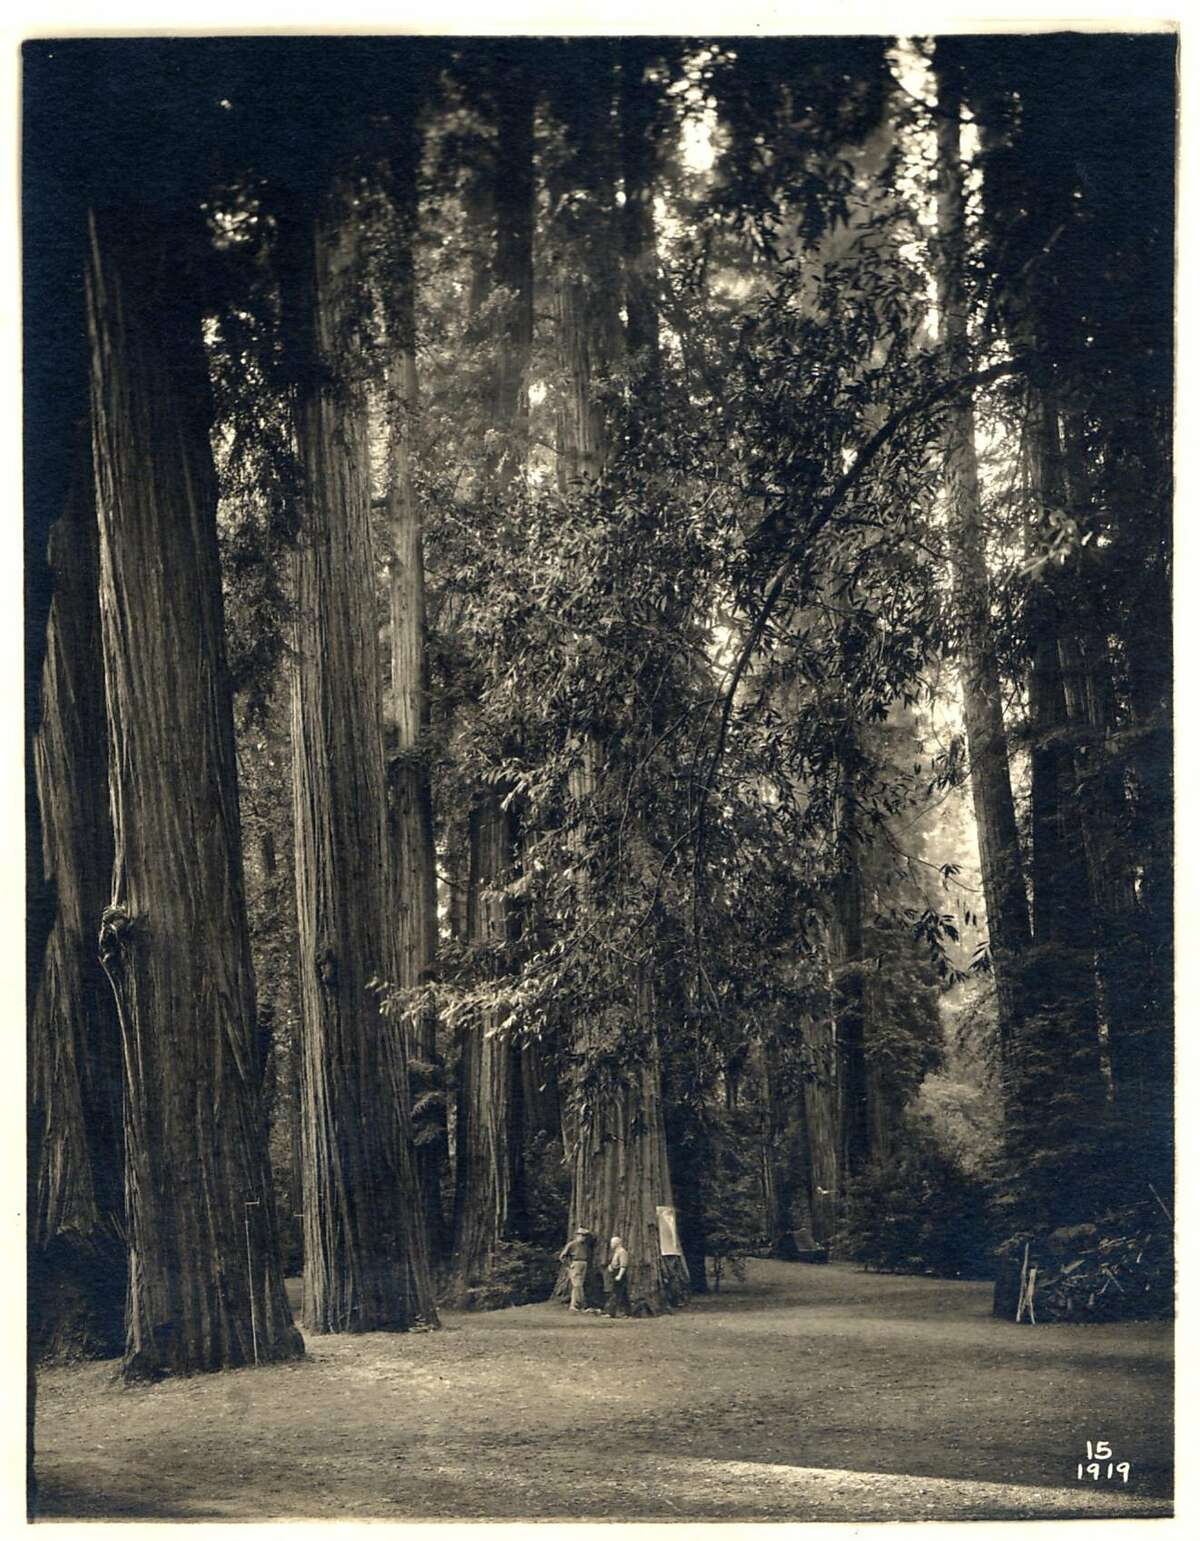 Some of the giant redwoods in the Bohemian Grove are 300 feet tall and 1,000 years old. Ran on: 07-12-2007 Ancient redwoods in the Bohemian Grove have lured members to the woodland for 135 years.